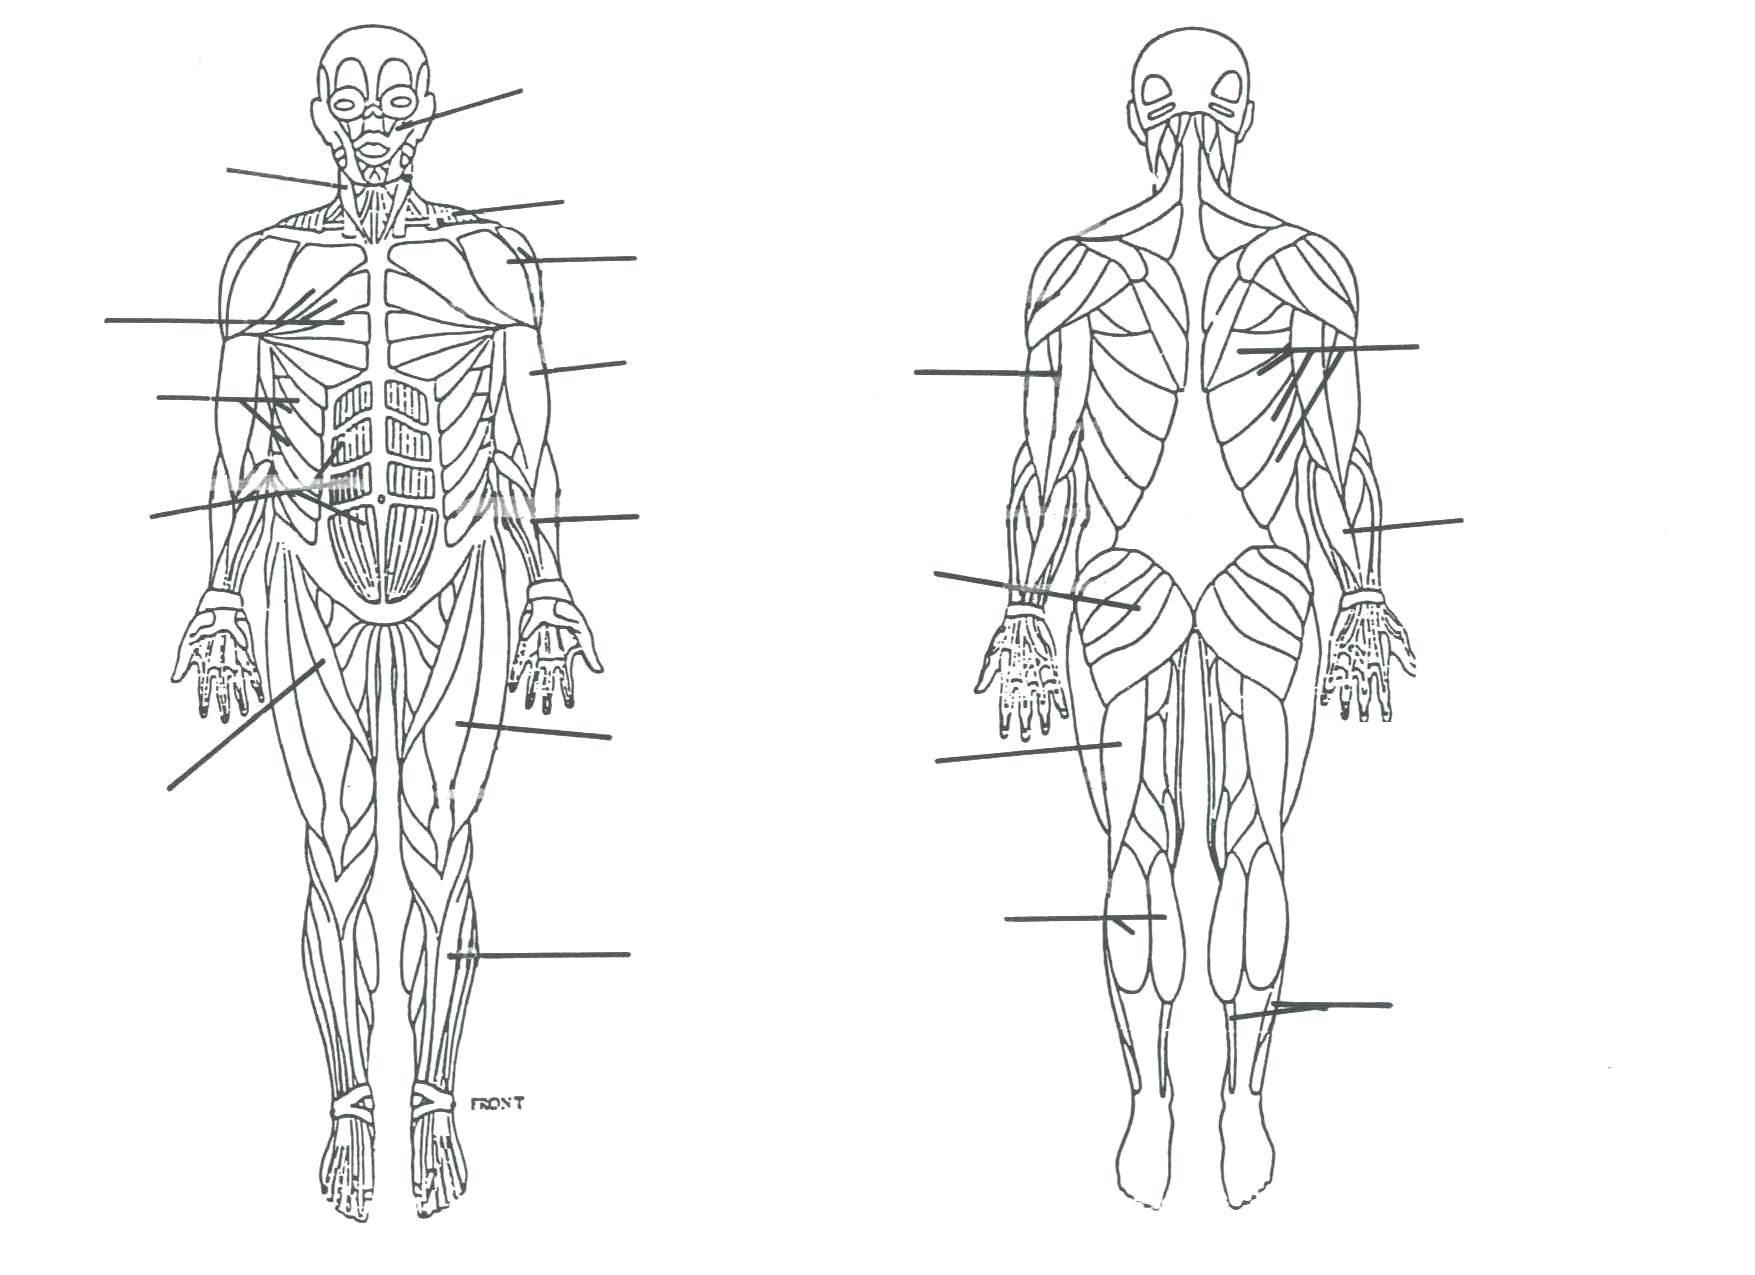 Superior Body Diagram Unlabeled